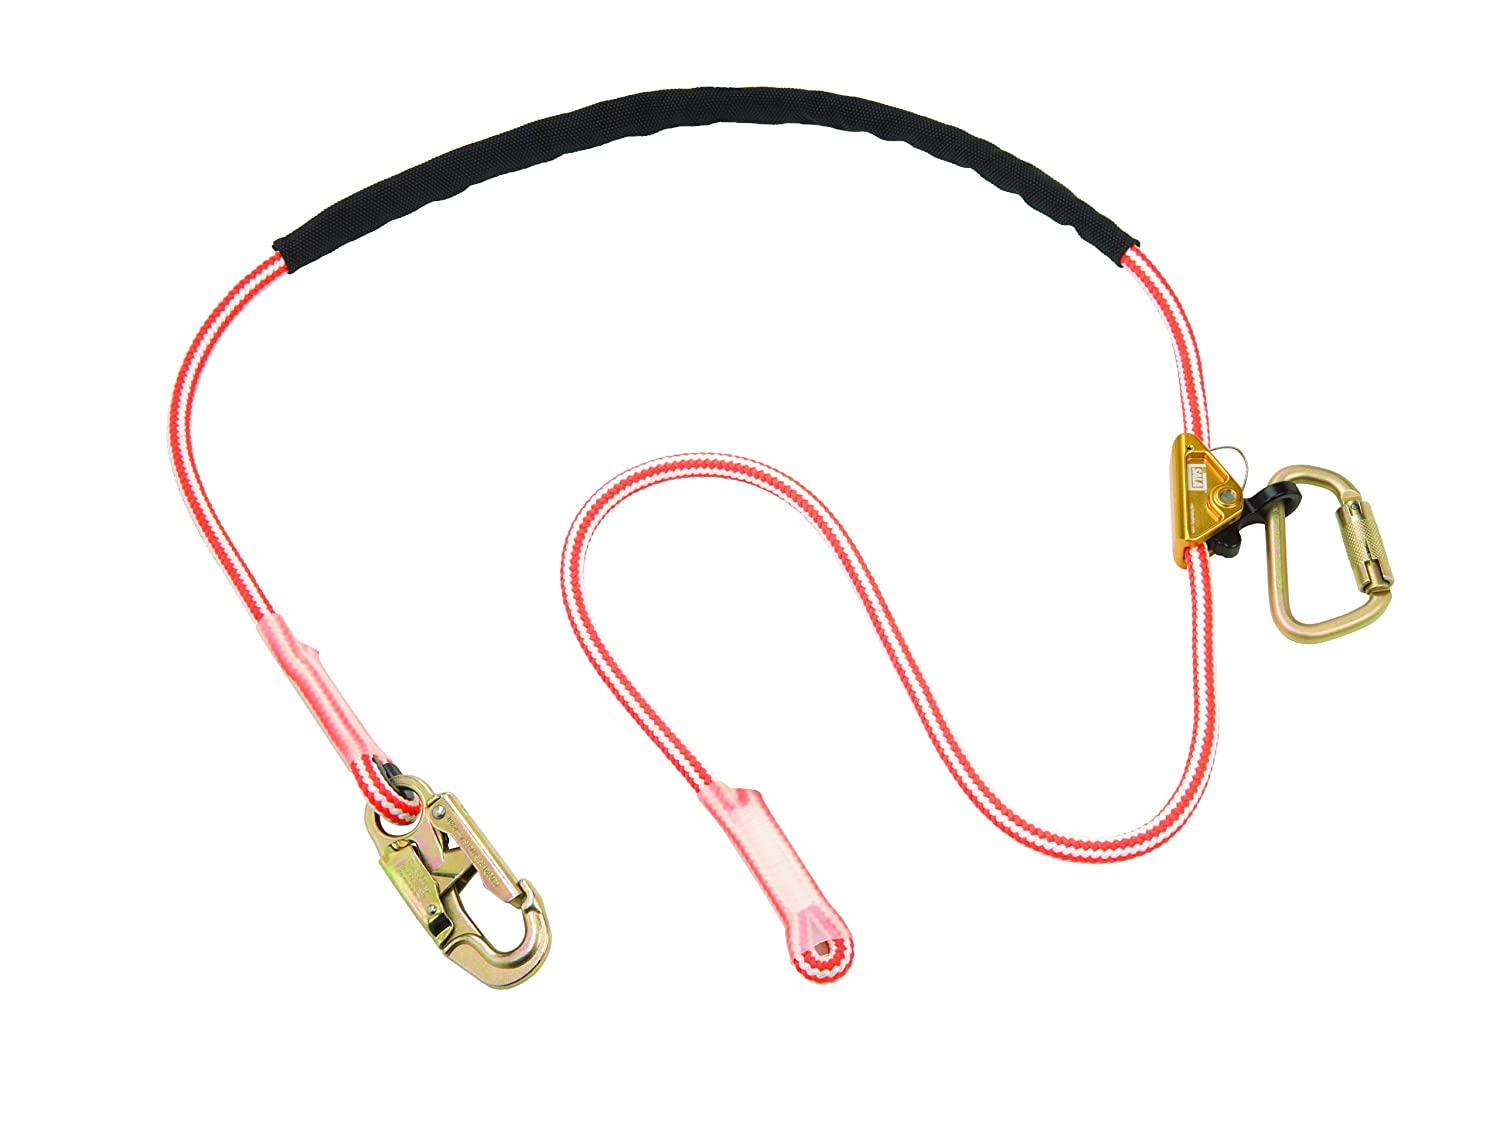 3M DBI-SALA Award-winning store Max 78% OFF 1234070 Adjustable Rope 8' Positioning Strap S with